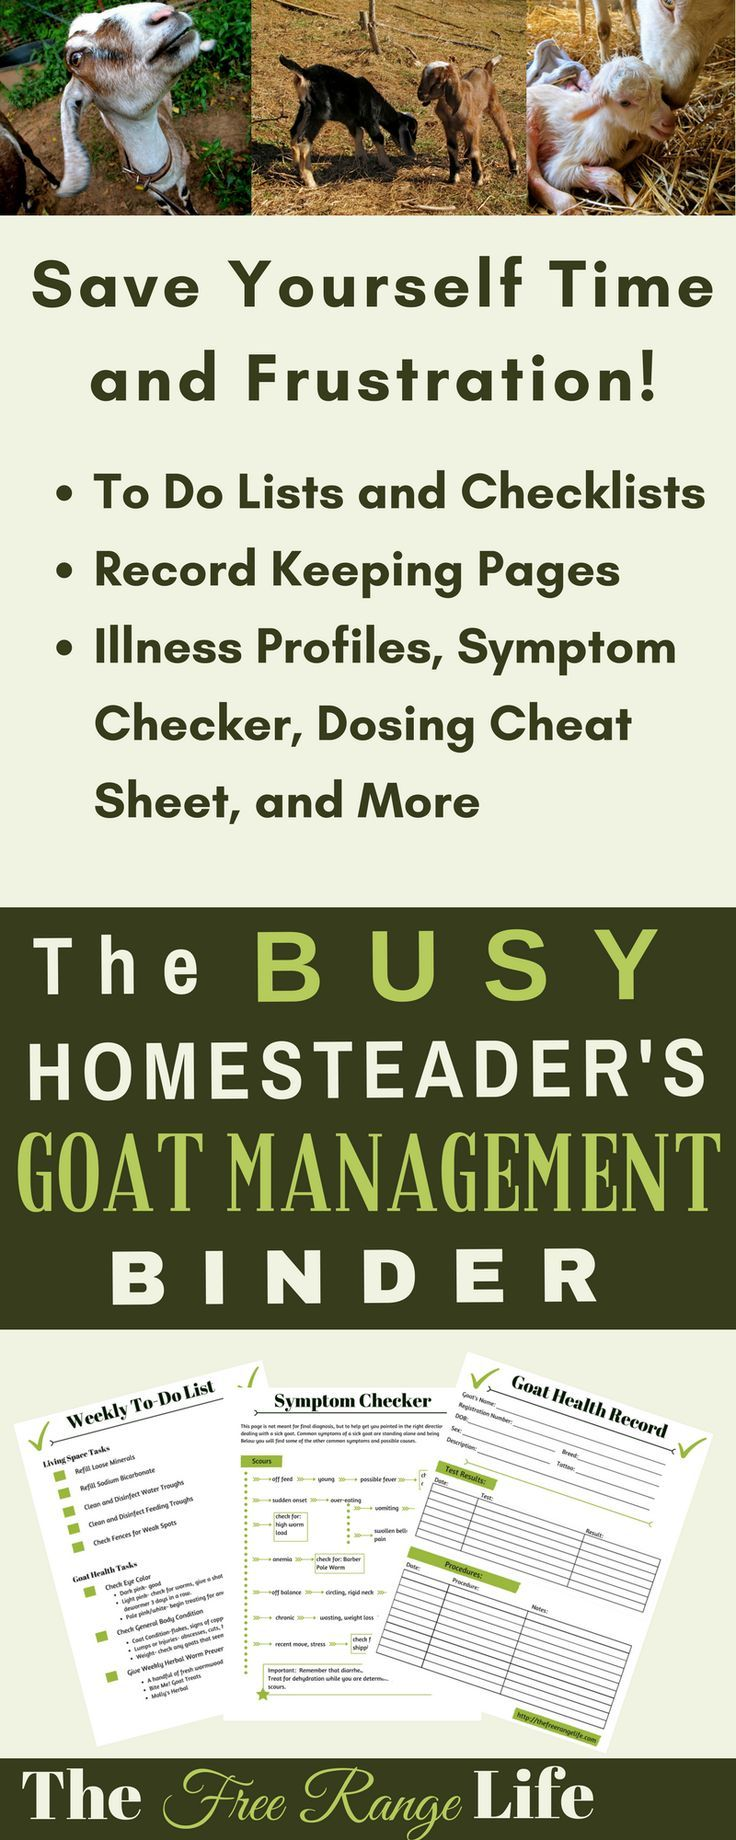 The Busy Homesteader's Goat Management Binder is a excellent tool! Perfect for busy homesteaders, it contains a lot of great information all in one location. It simplifies our busy lives and makes managing our herd so much easier.